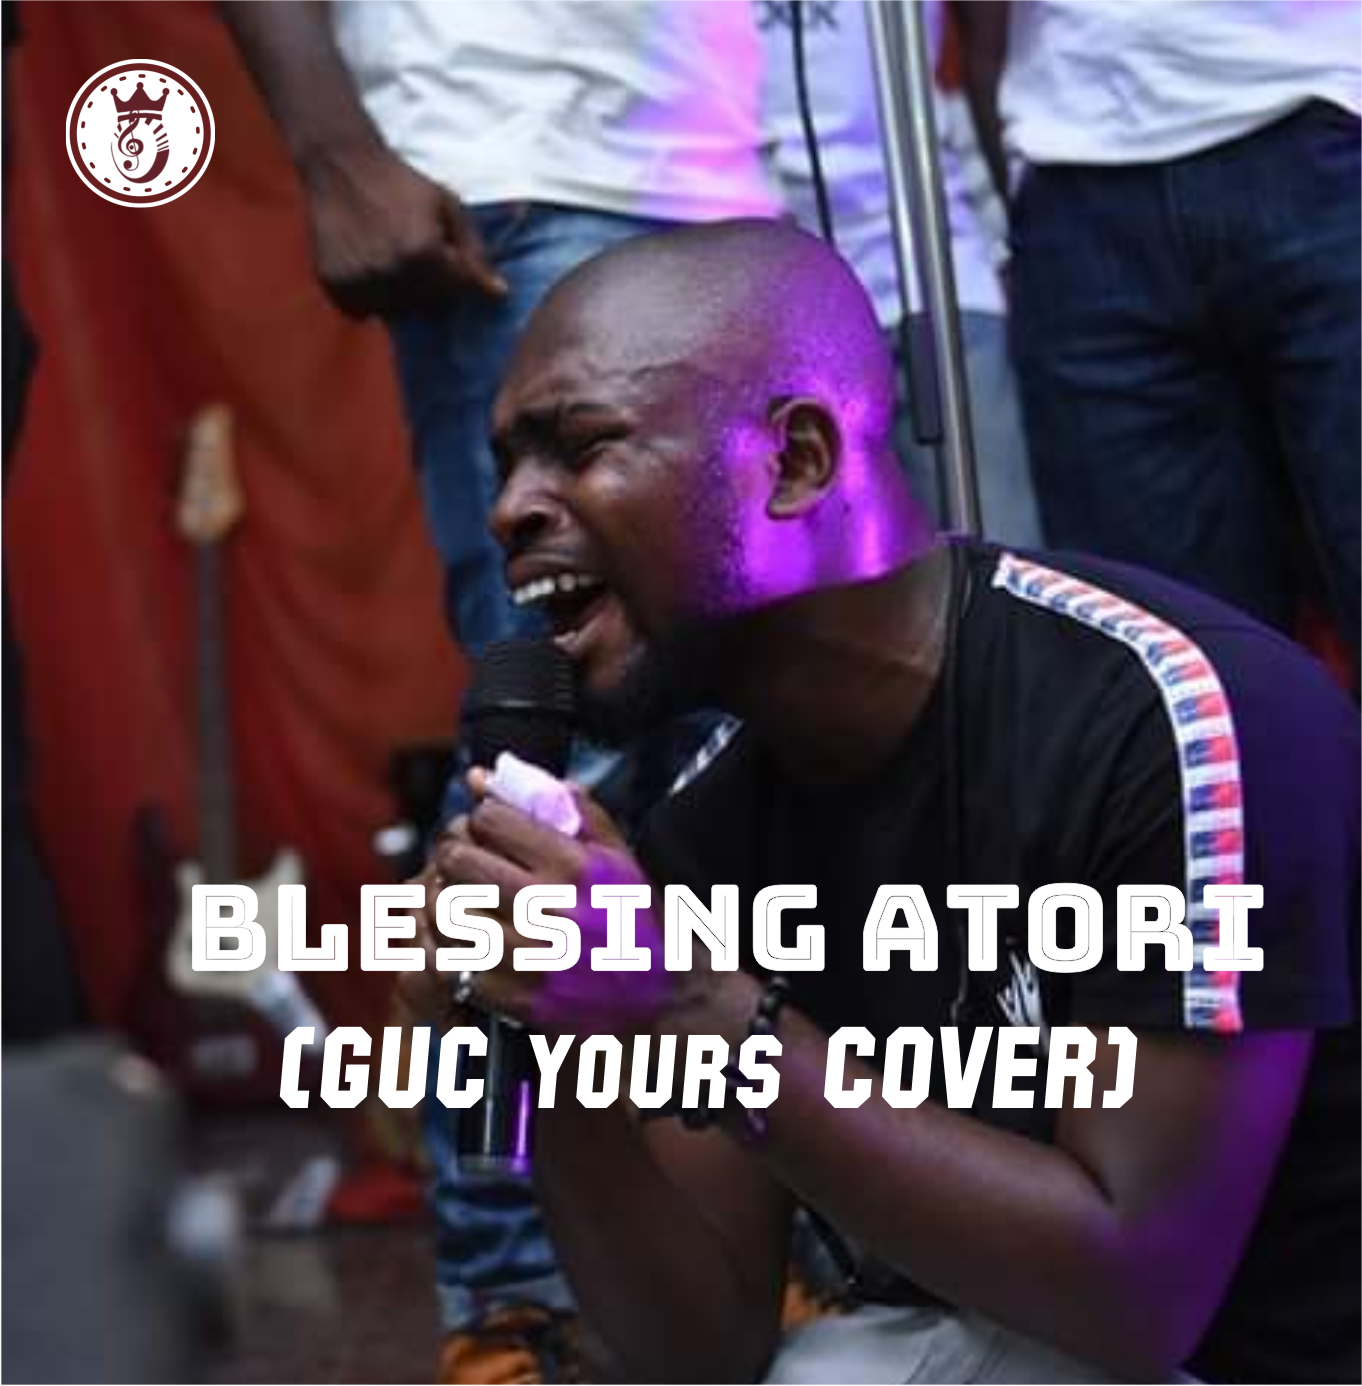 GUC Yours Cover by Blessing Atori